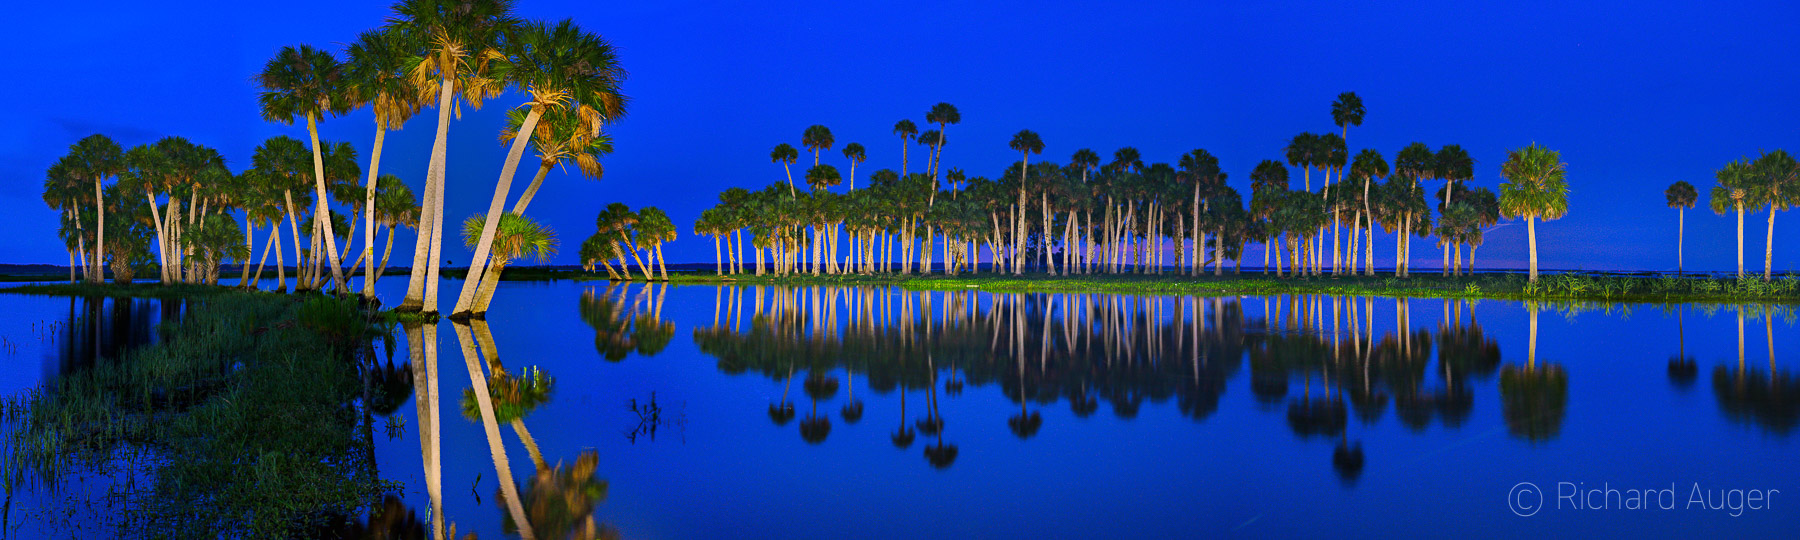 St Johns River, Florida, Panorama, Night, Lighting, Palm Trees, Reflections